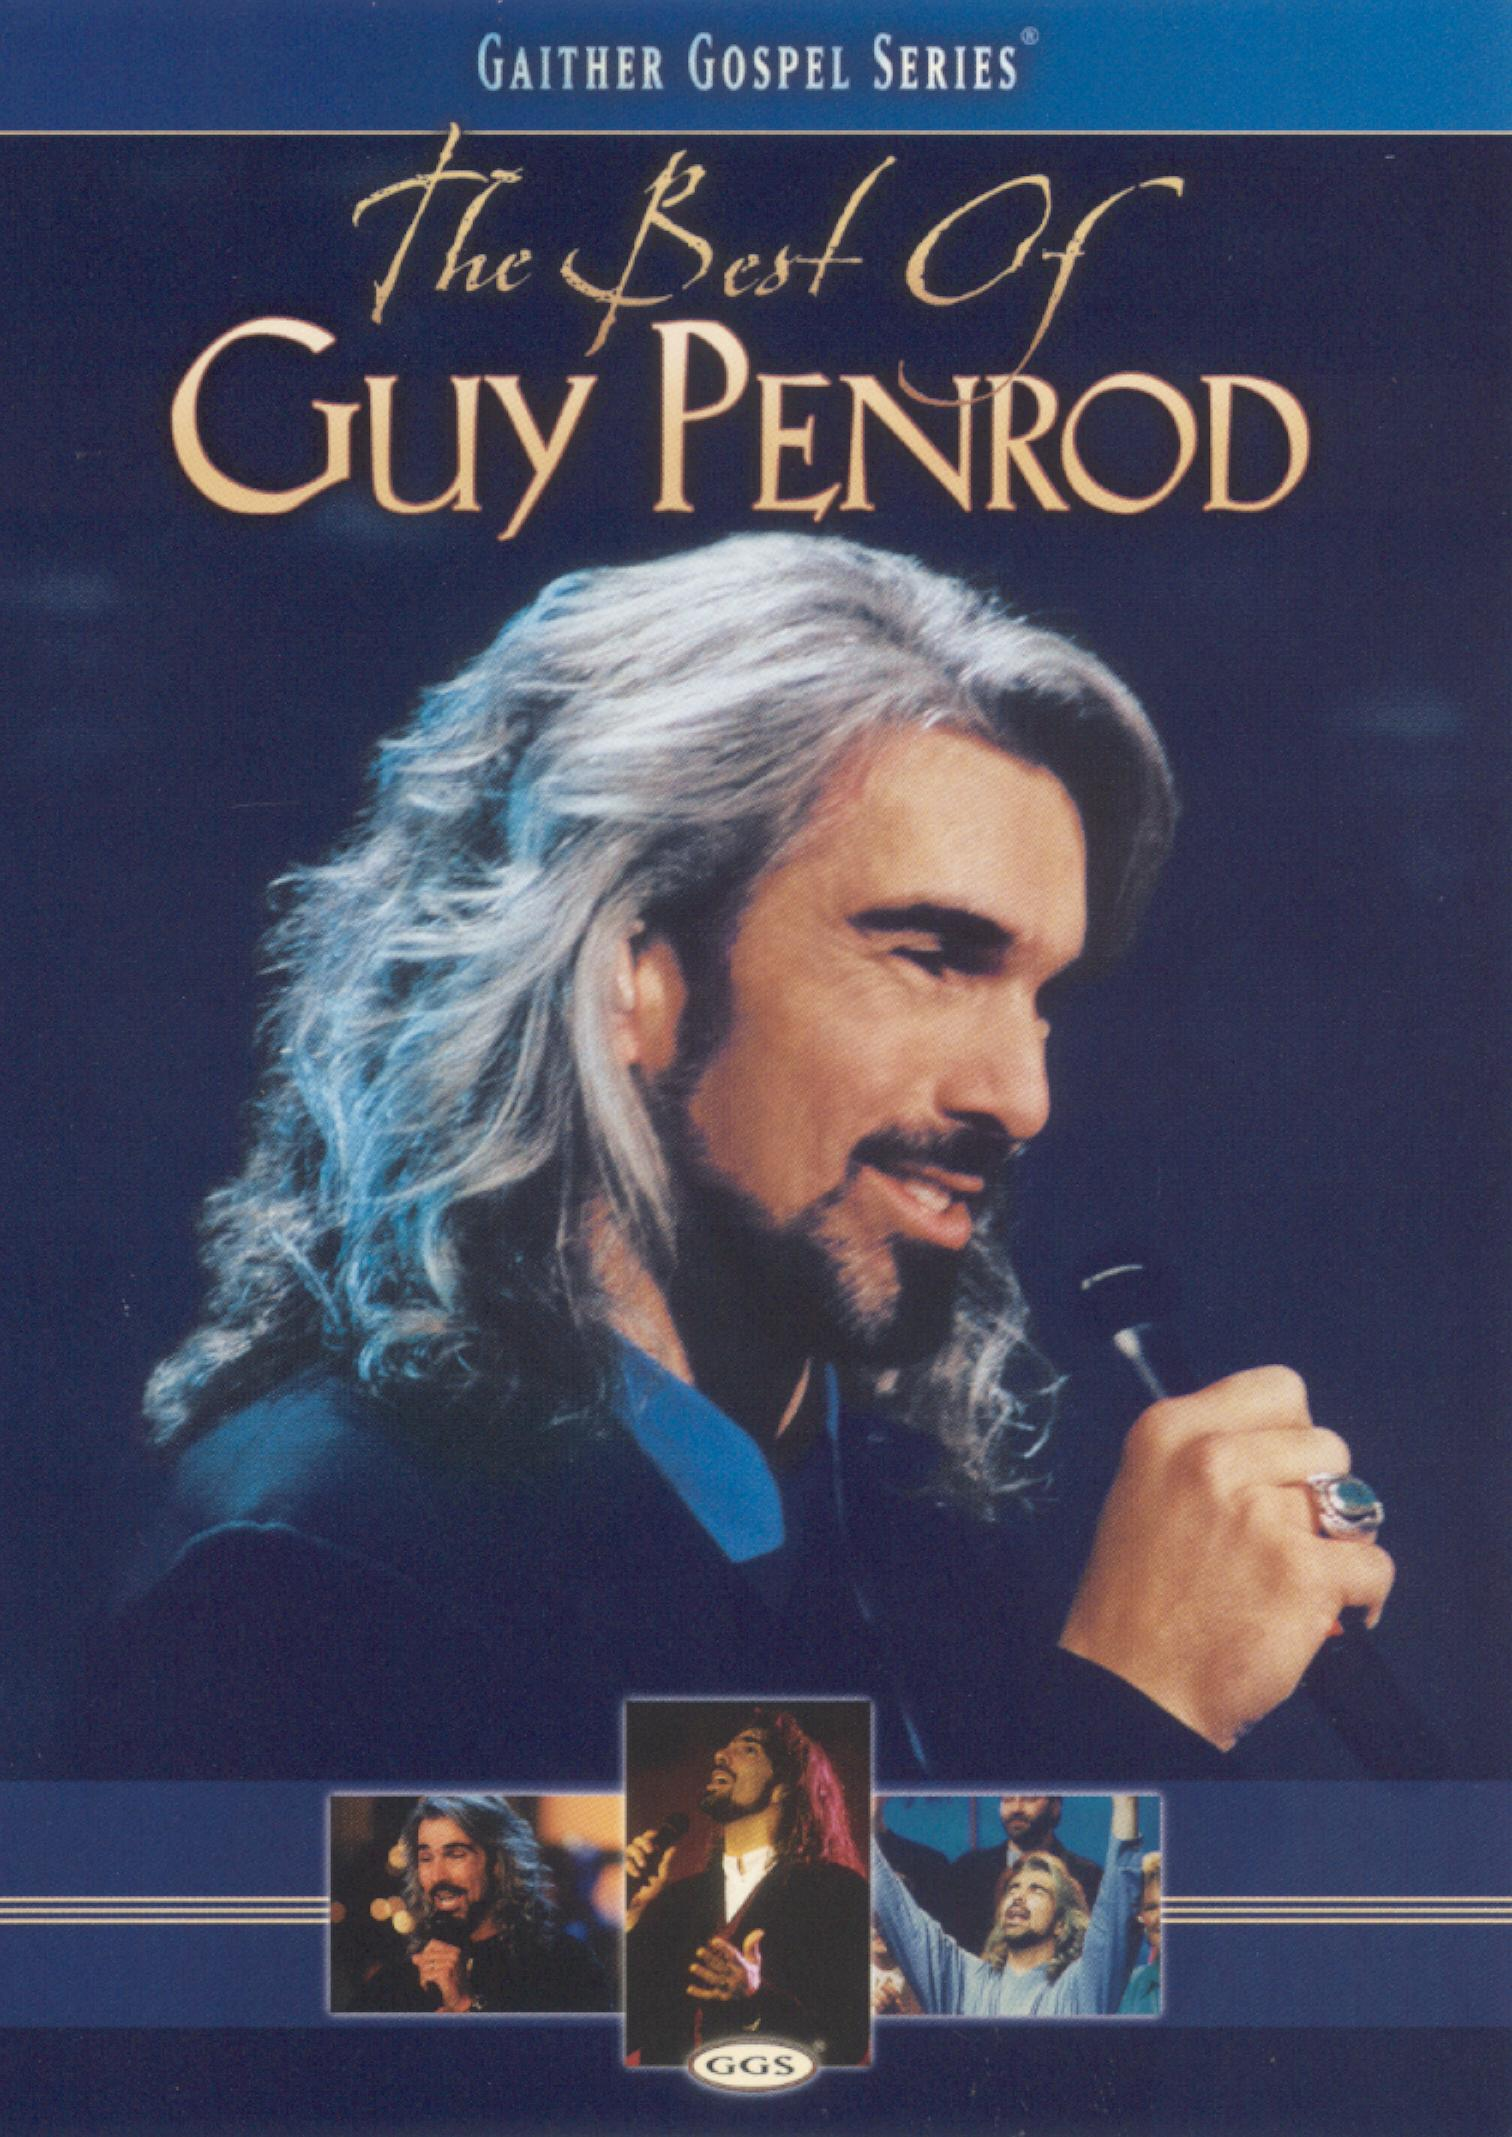 Guy Penrod: The Best of Guy Penrod